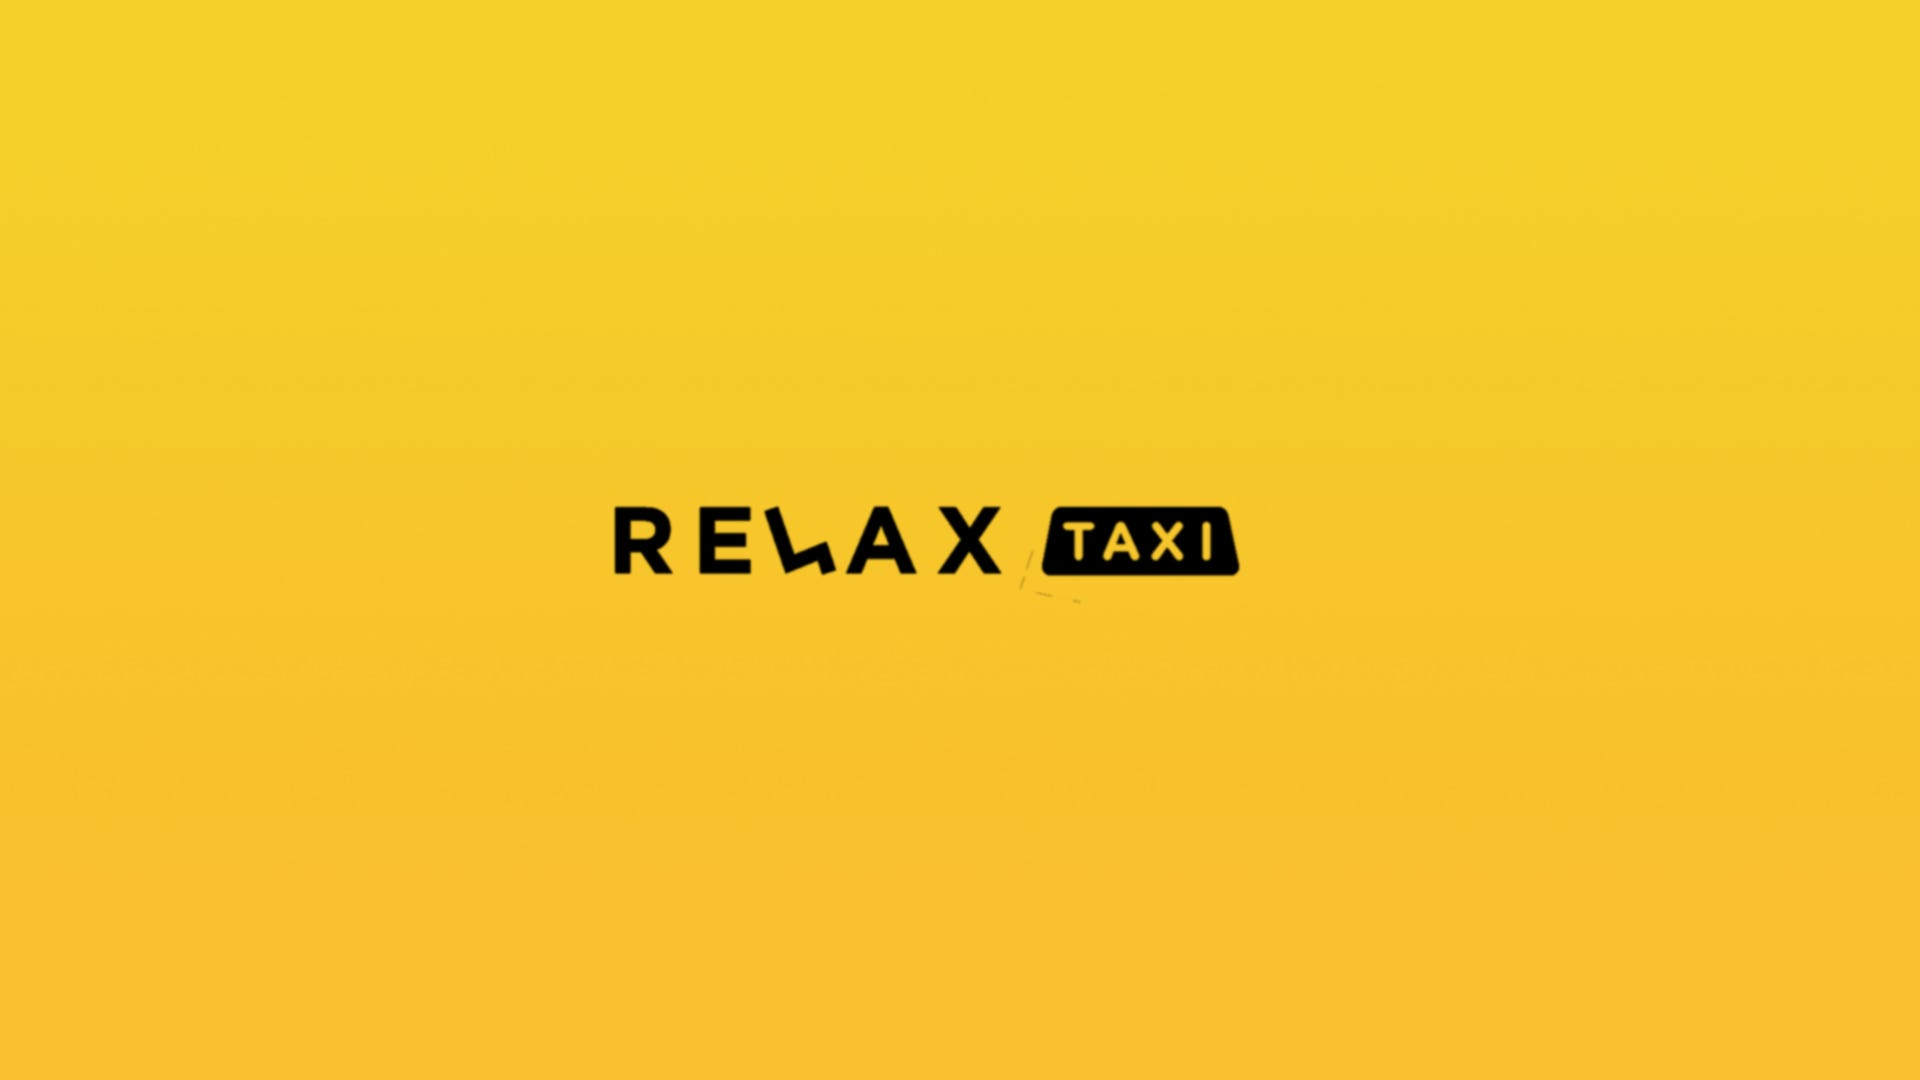 Relax Taxi